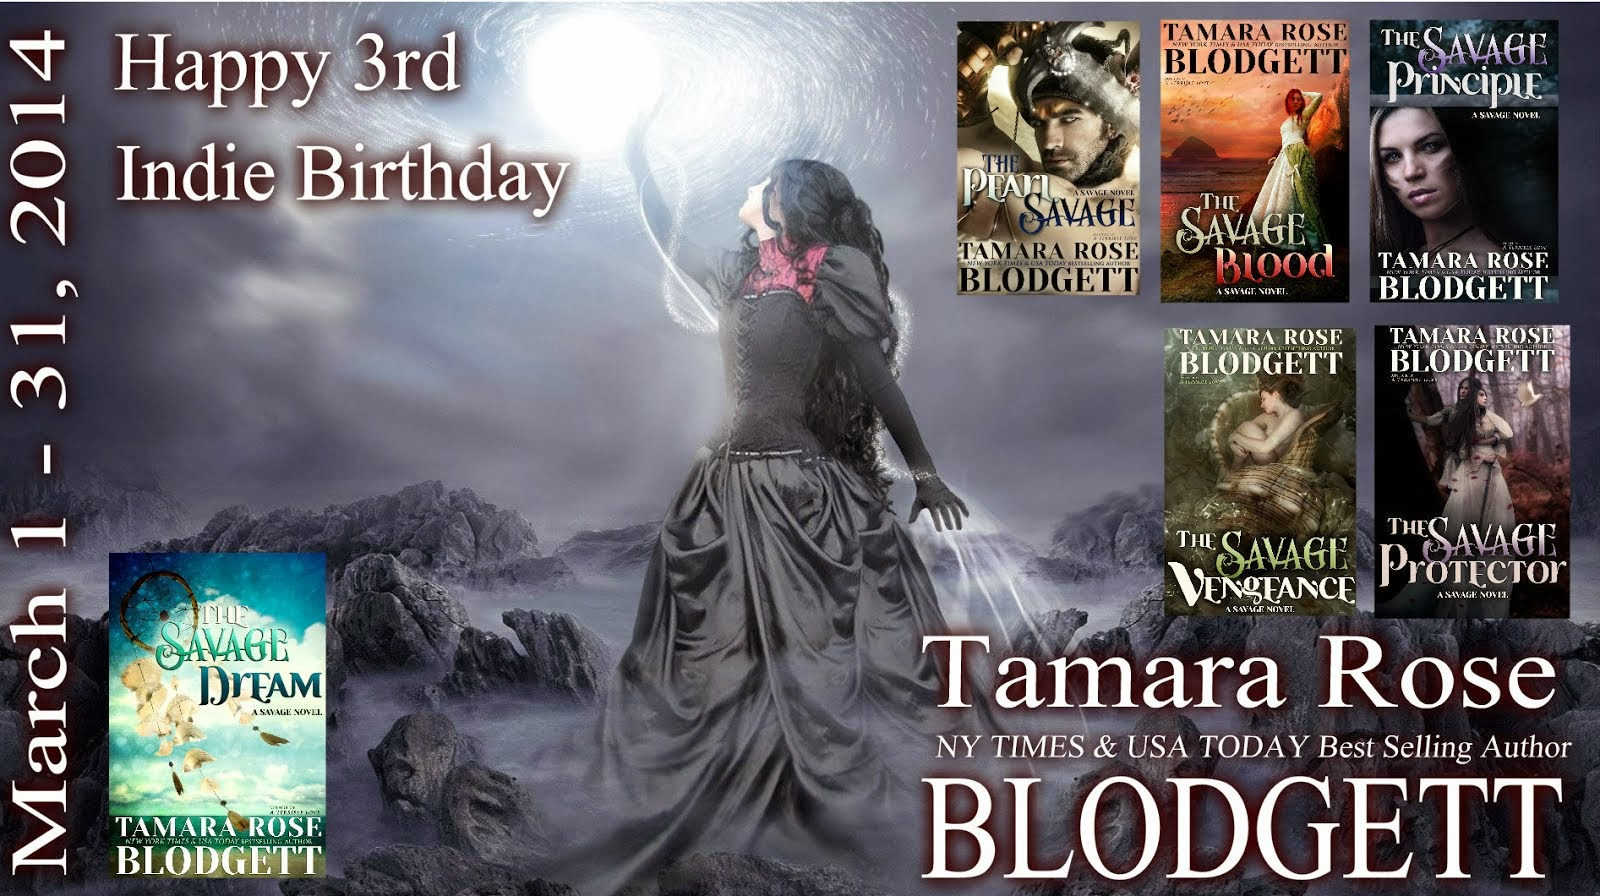 Tamara Rose Blodgett's 3rd Indie Birthday Celebration